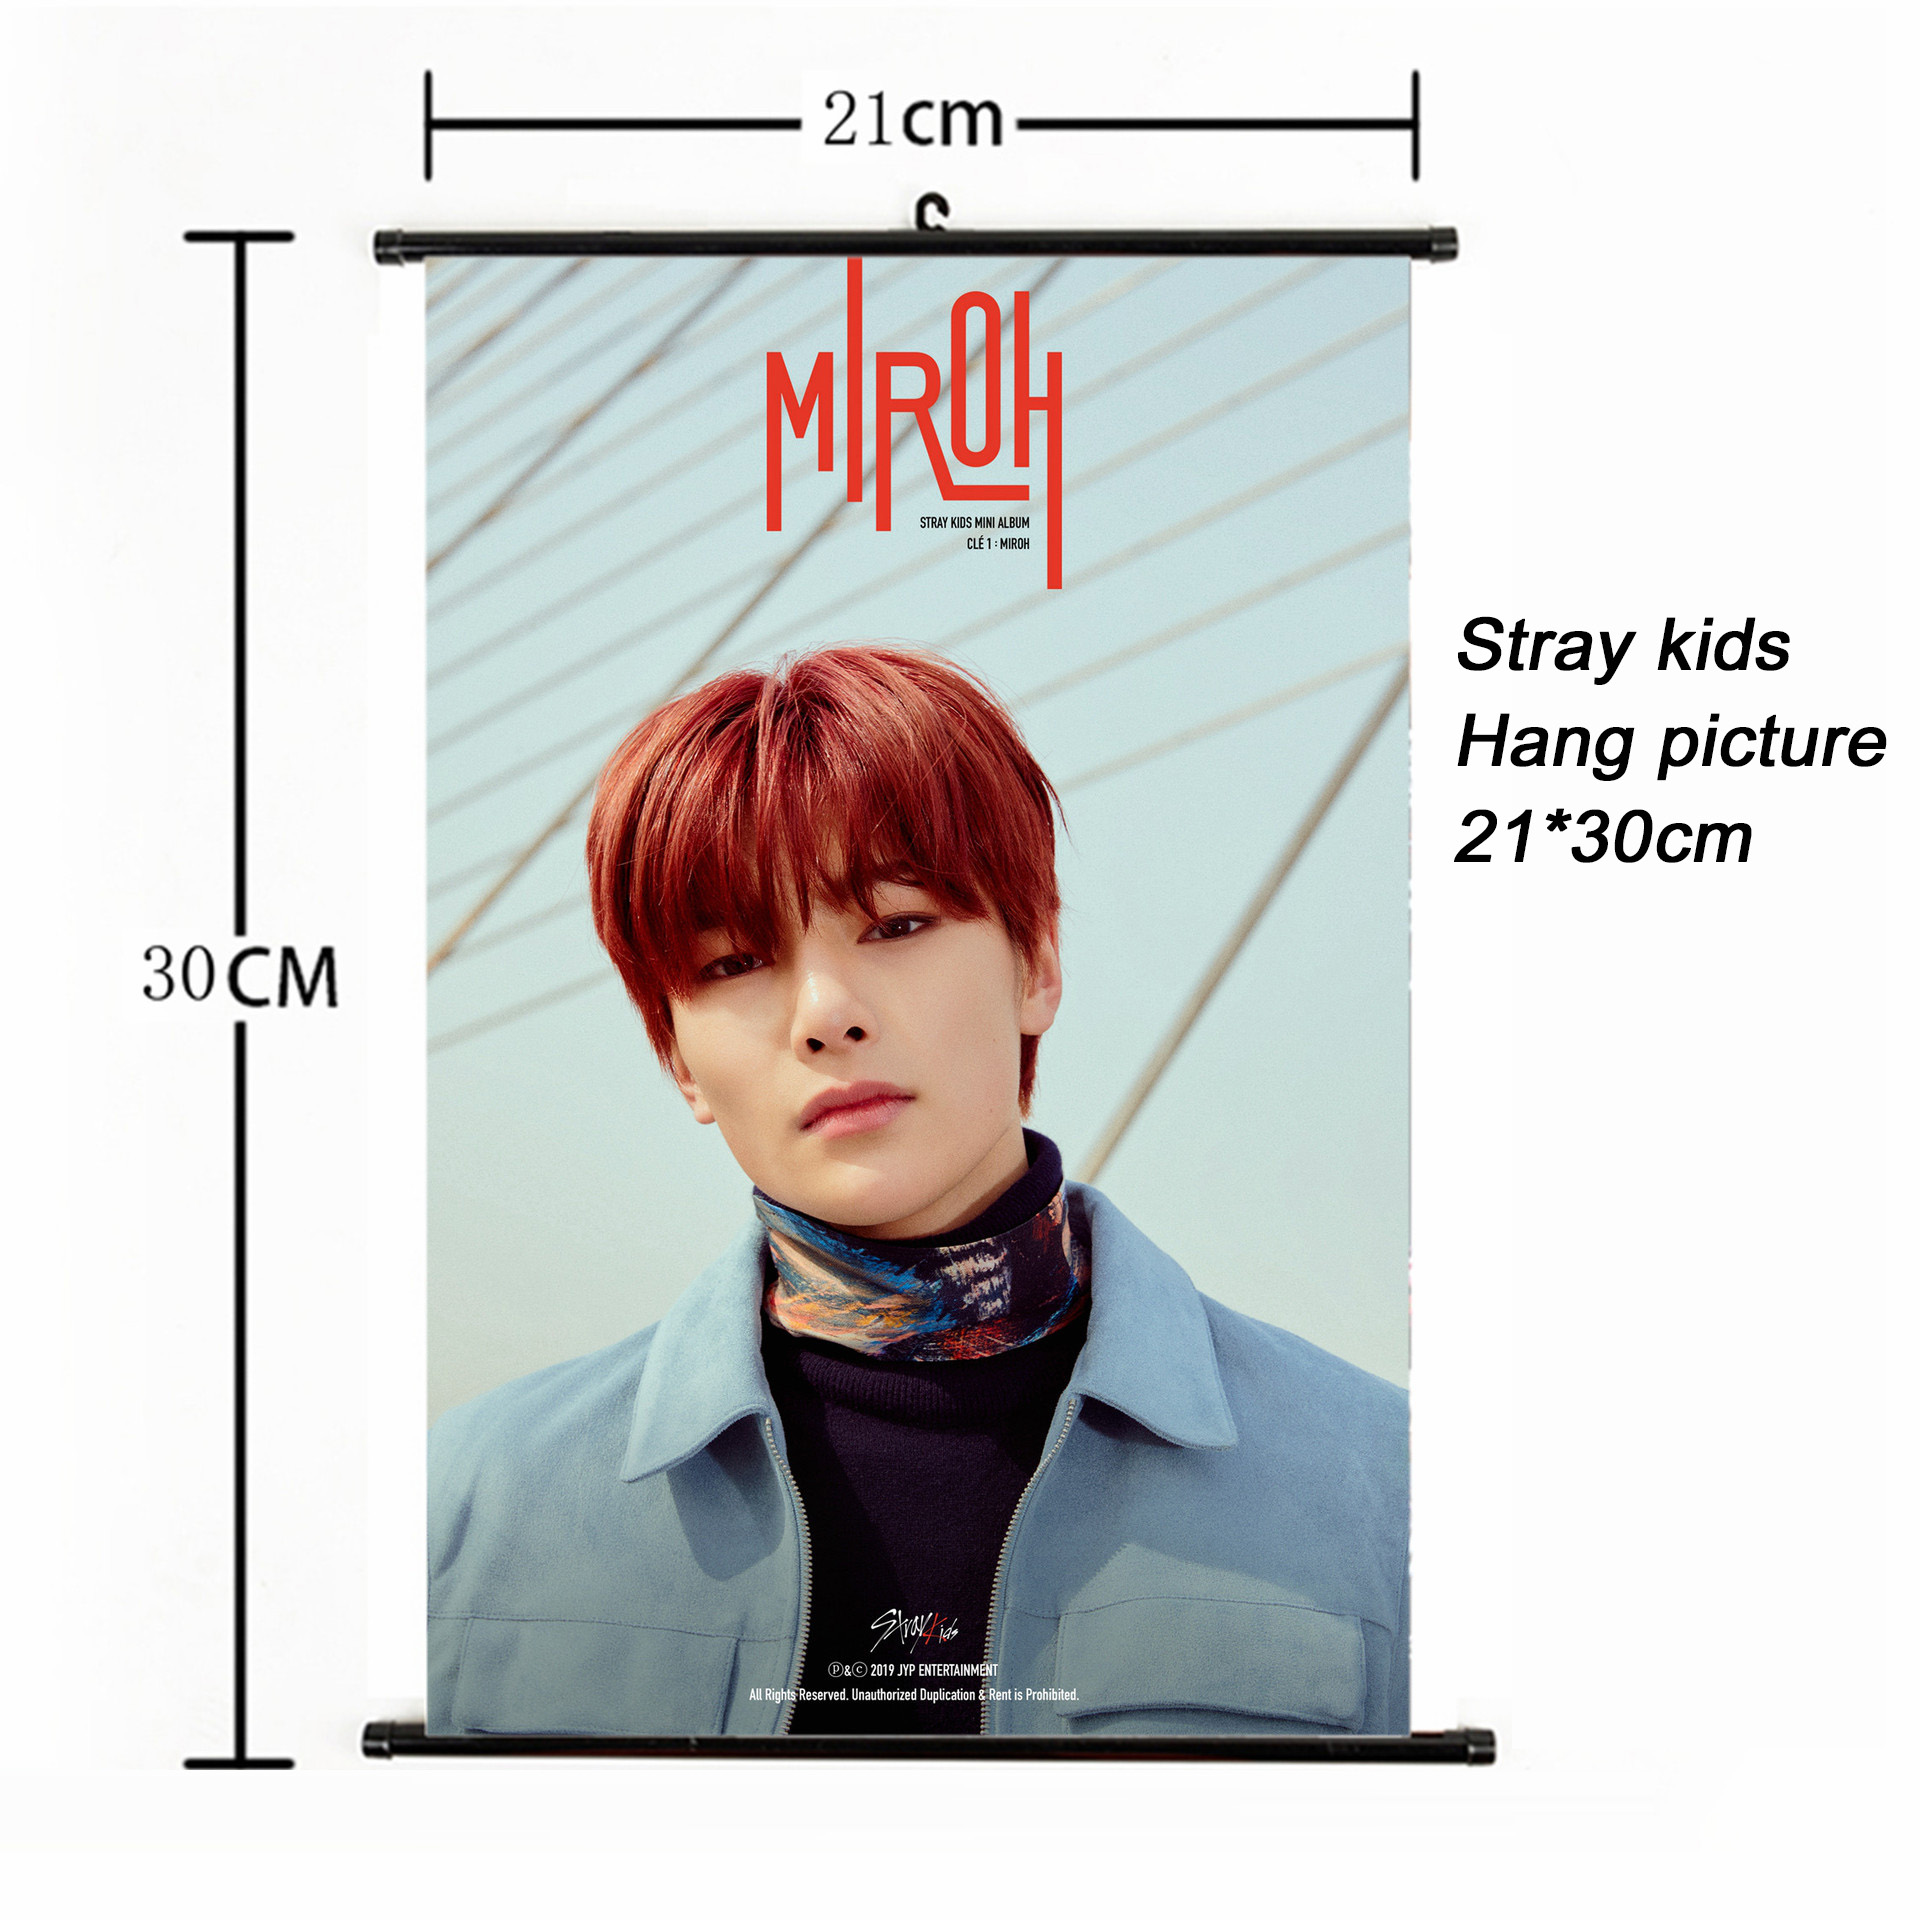 Fashion Kpop Stray Kids Hang Picture 21*30cm Poster Stray Kids MIROH Album Photocard For Fans Collection Korean Stationery Set